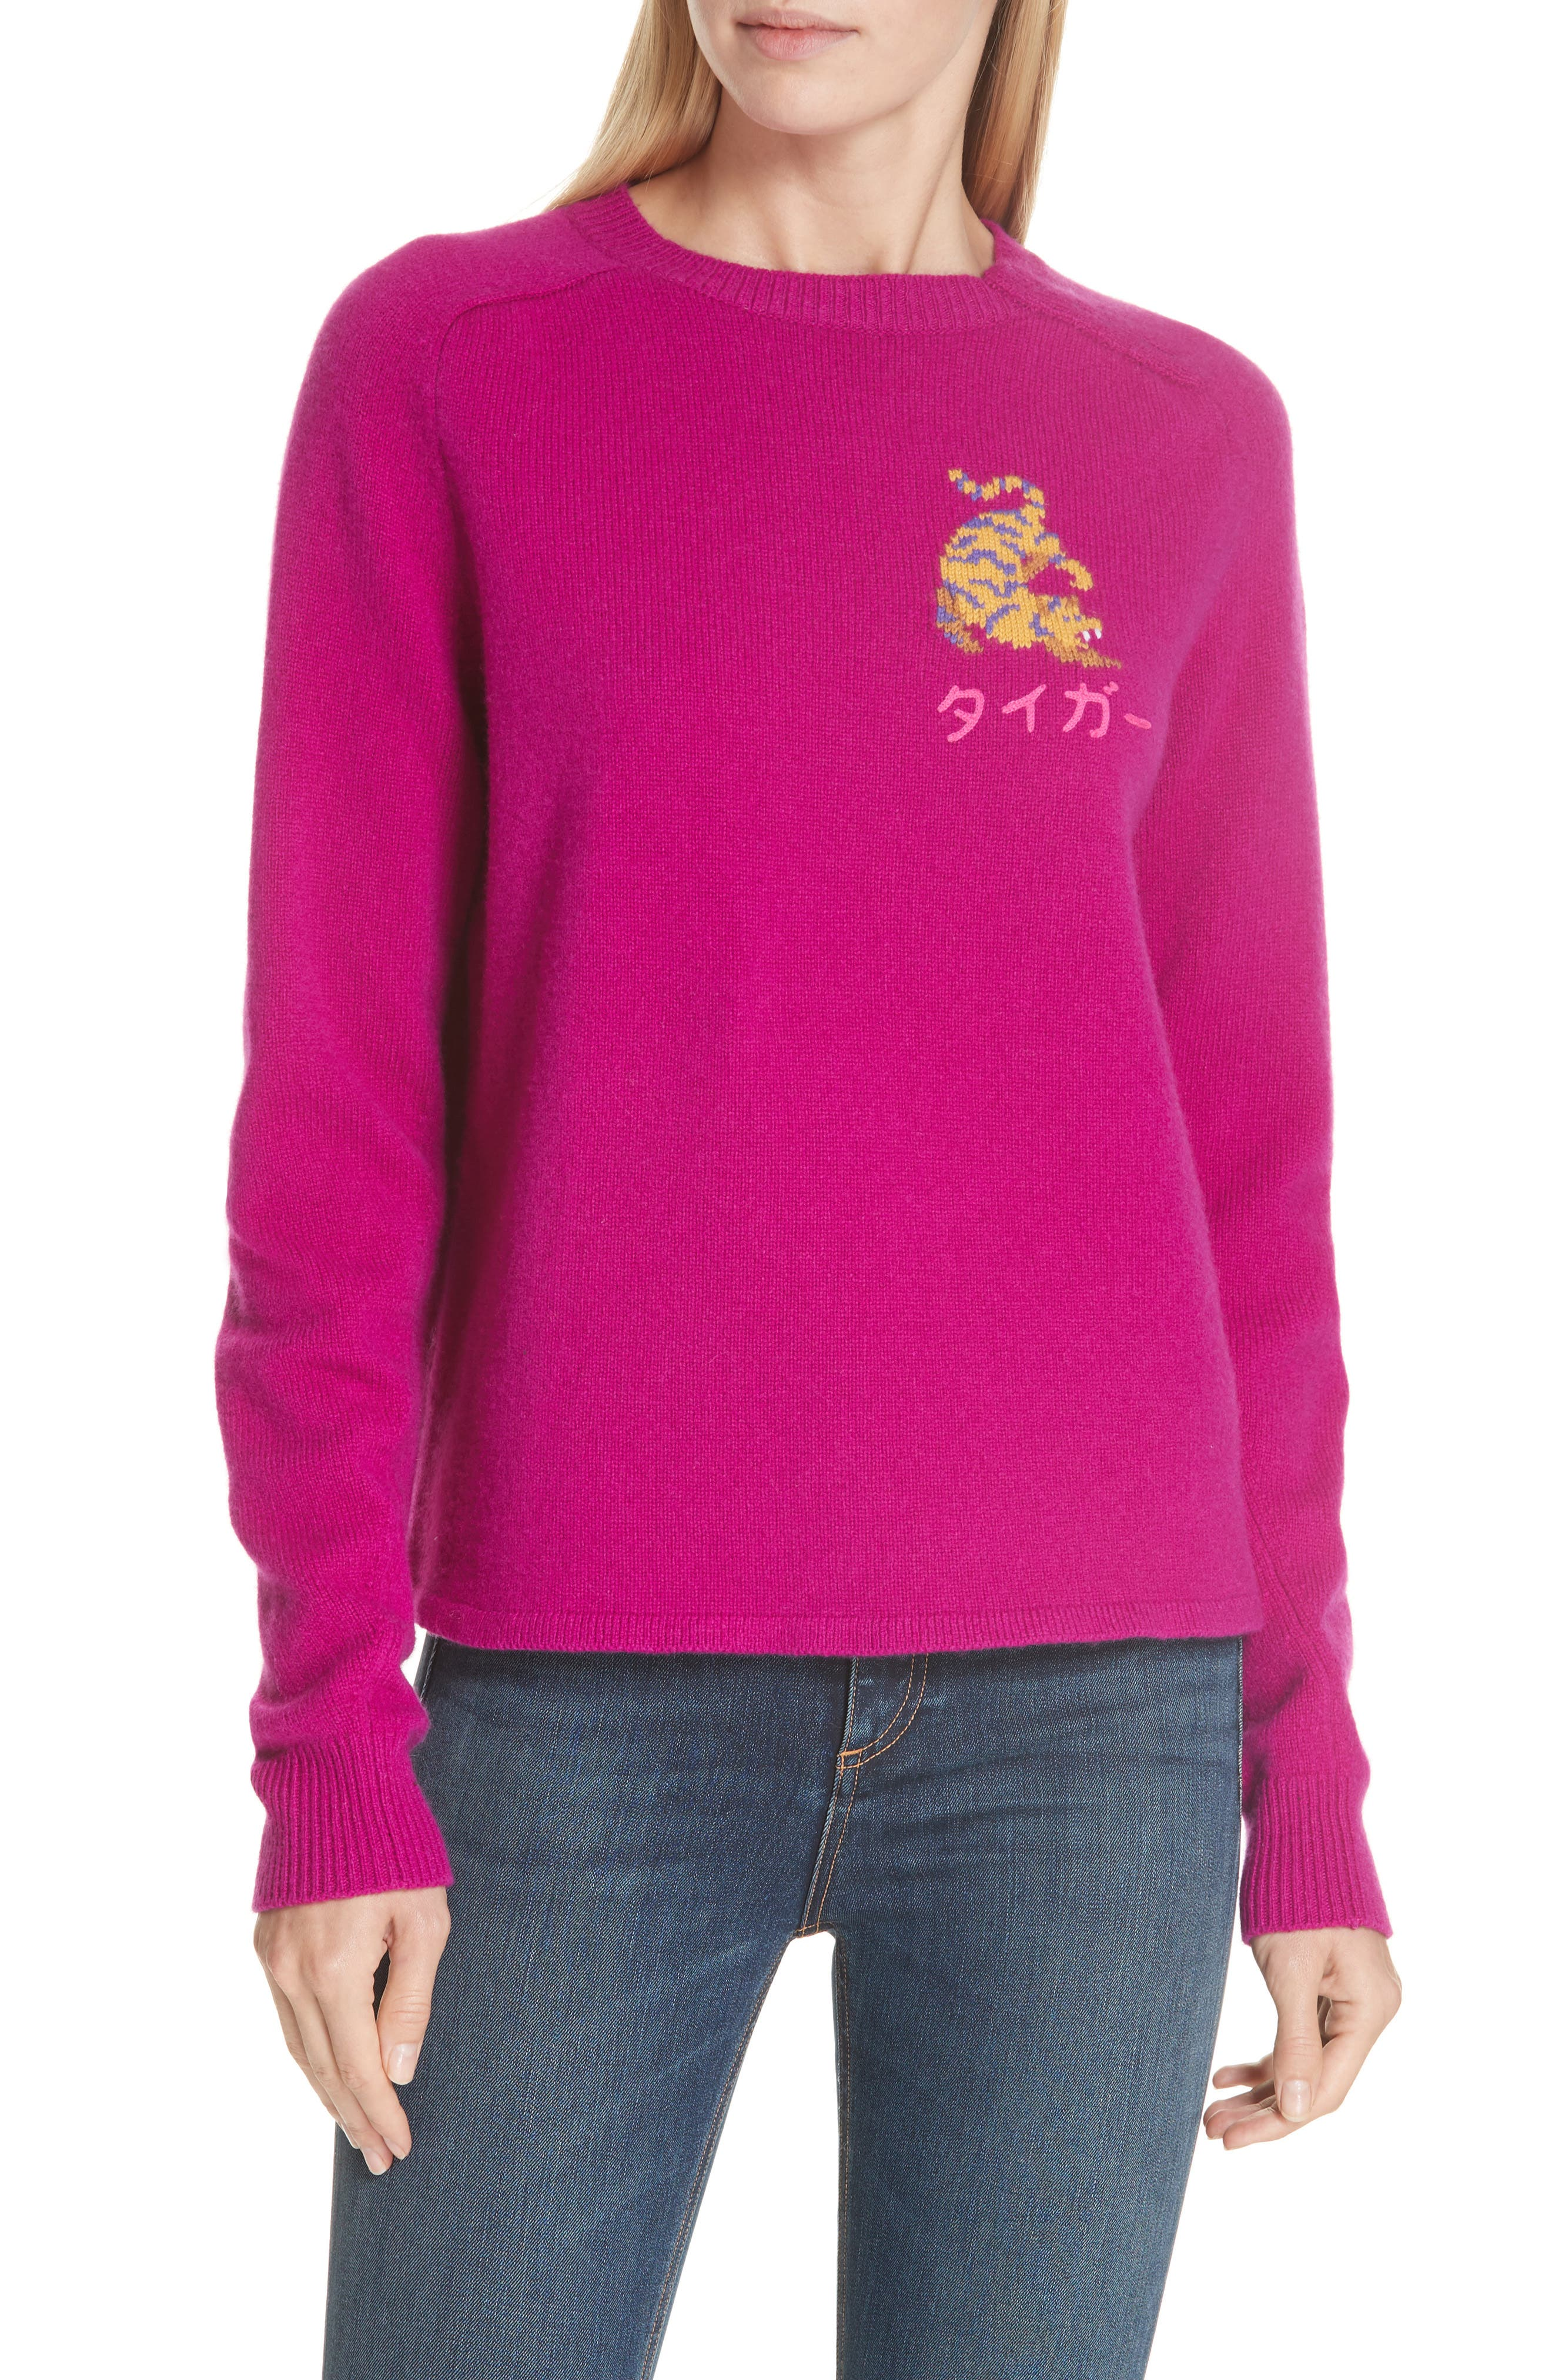 Storm Wool Intarsia Pullover Sweater in Magenta